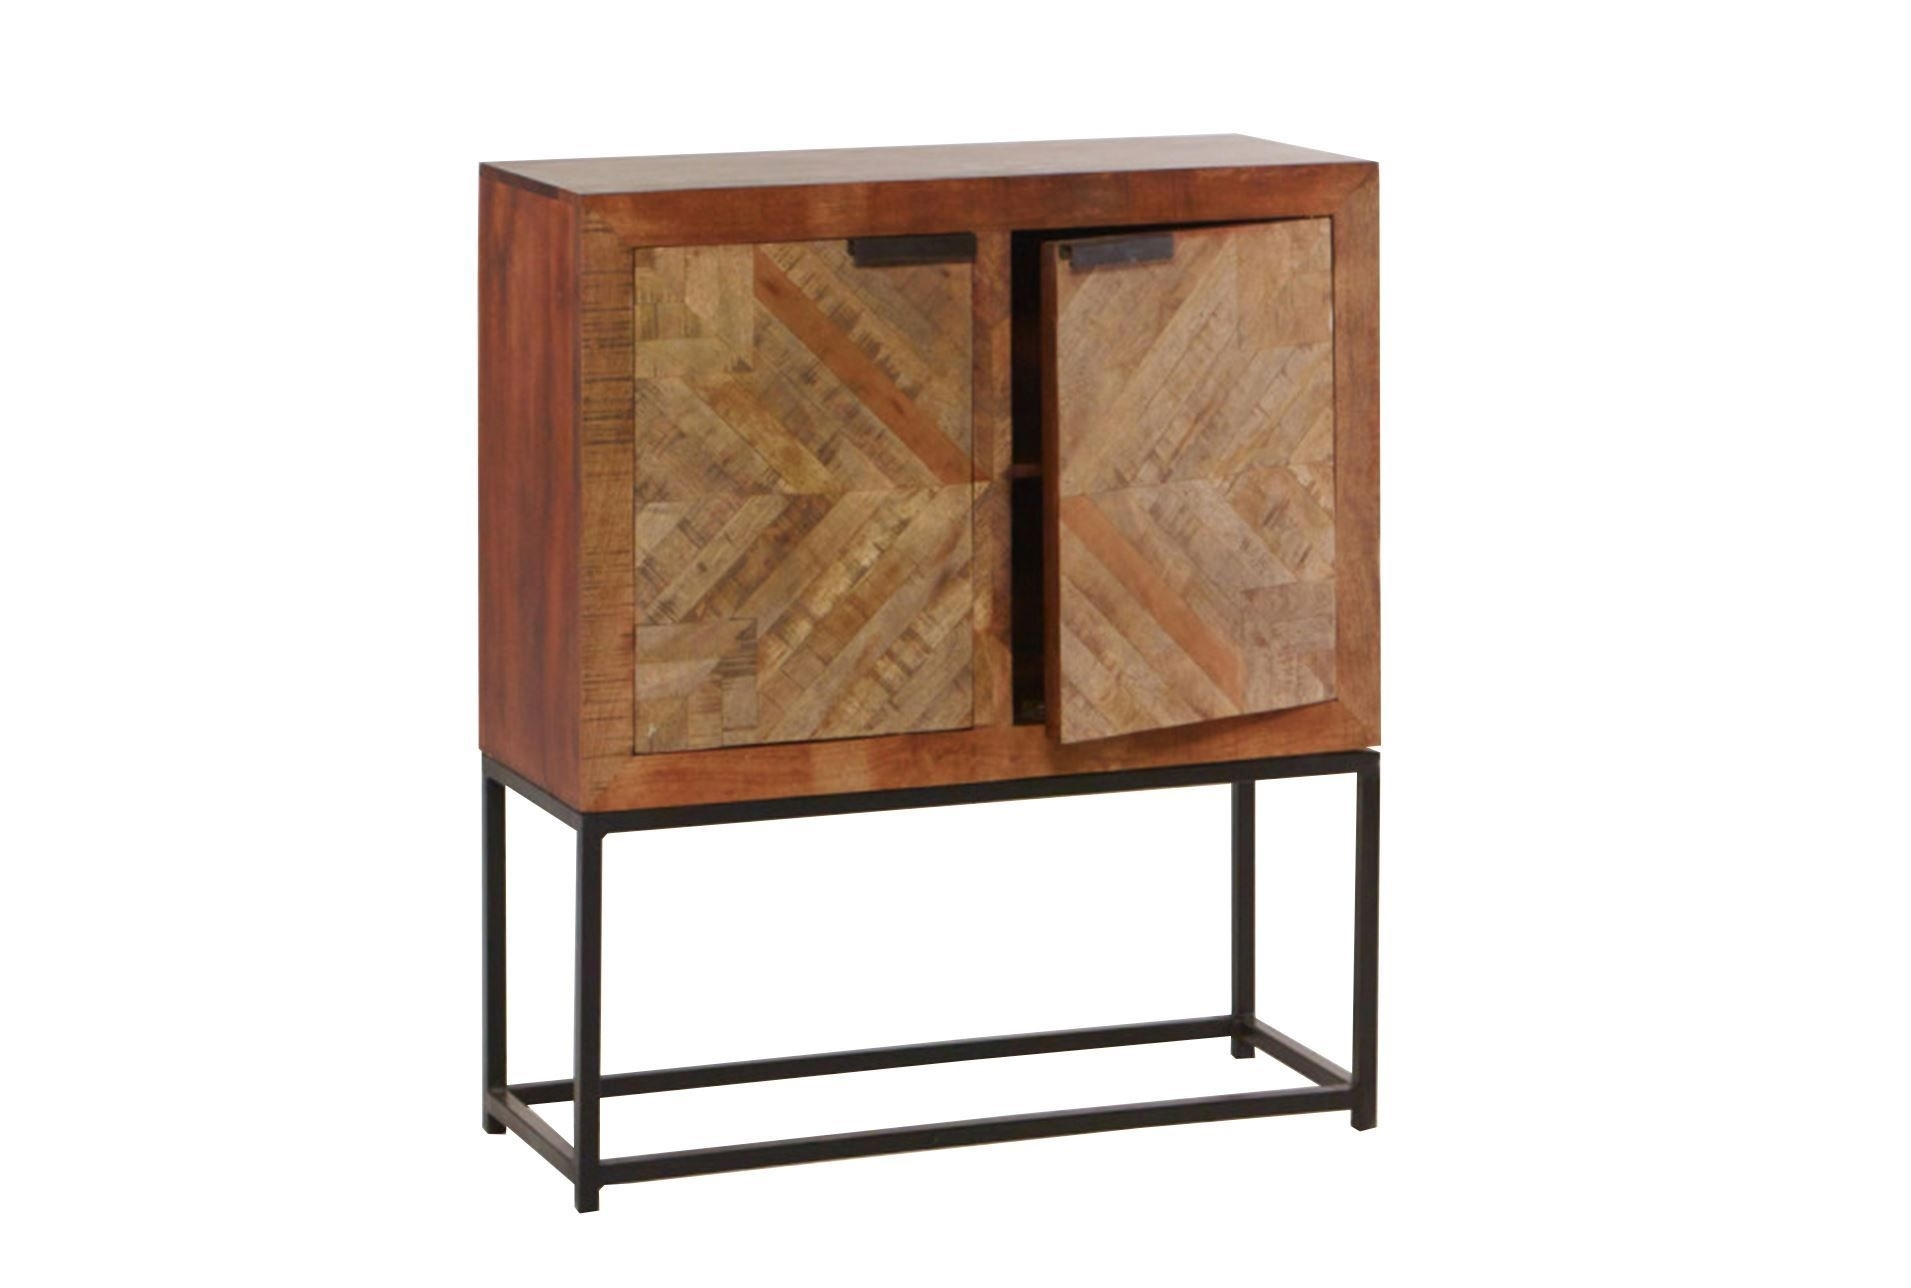 Mango Wood Finish 2-Door Cabinet | Doors And Woods with Natural Mango Wood Finish Sideboards (Image 15 of 30)